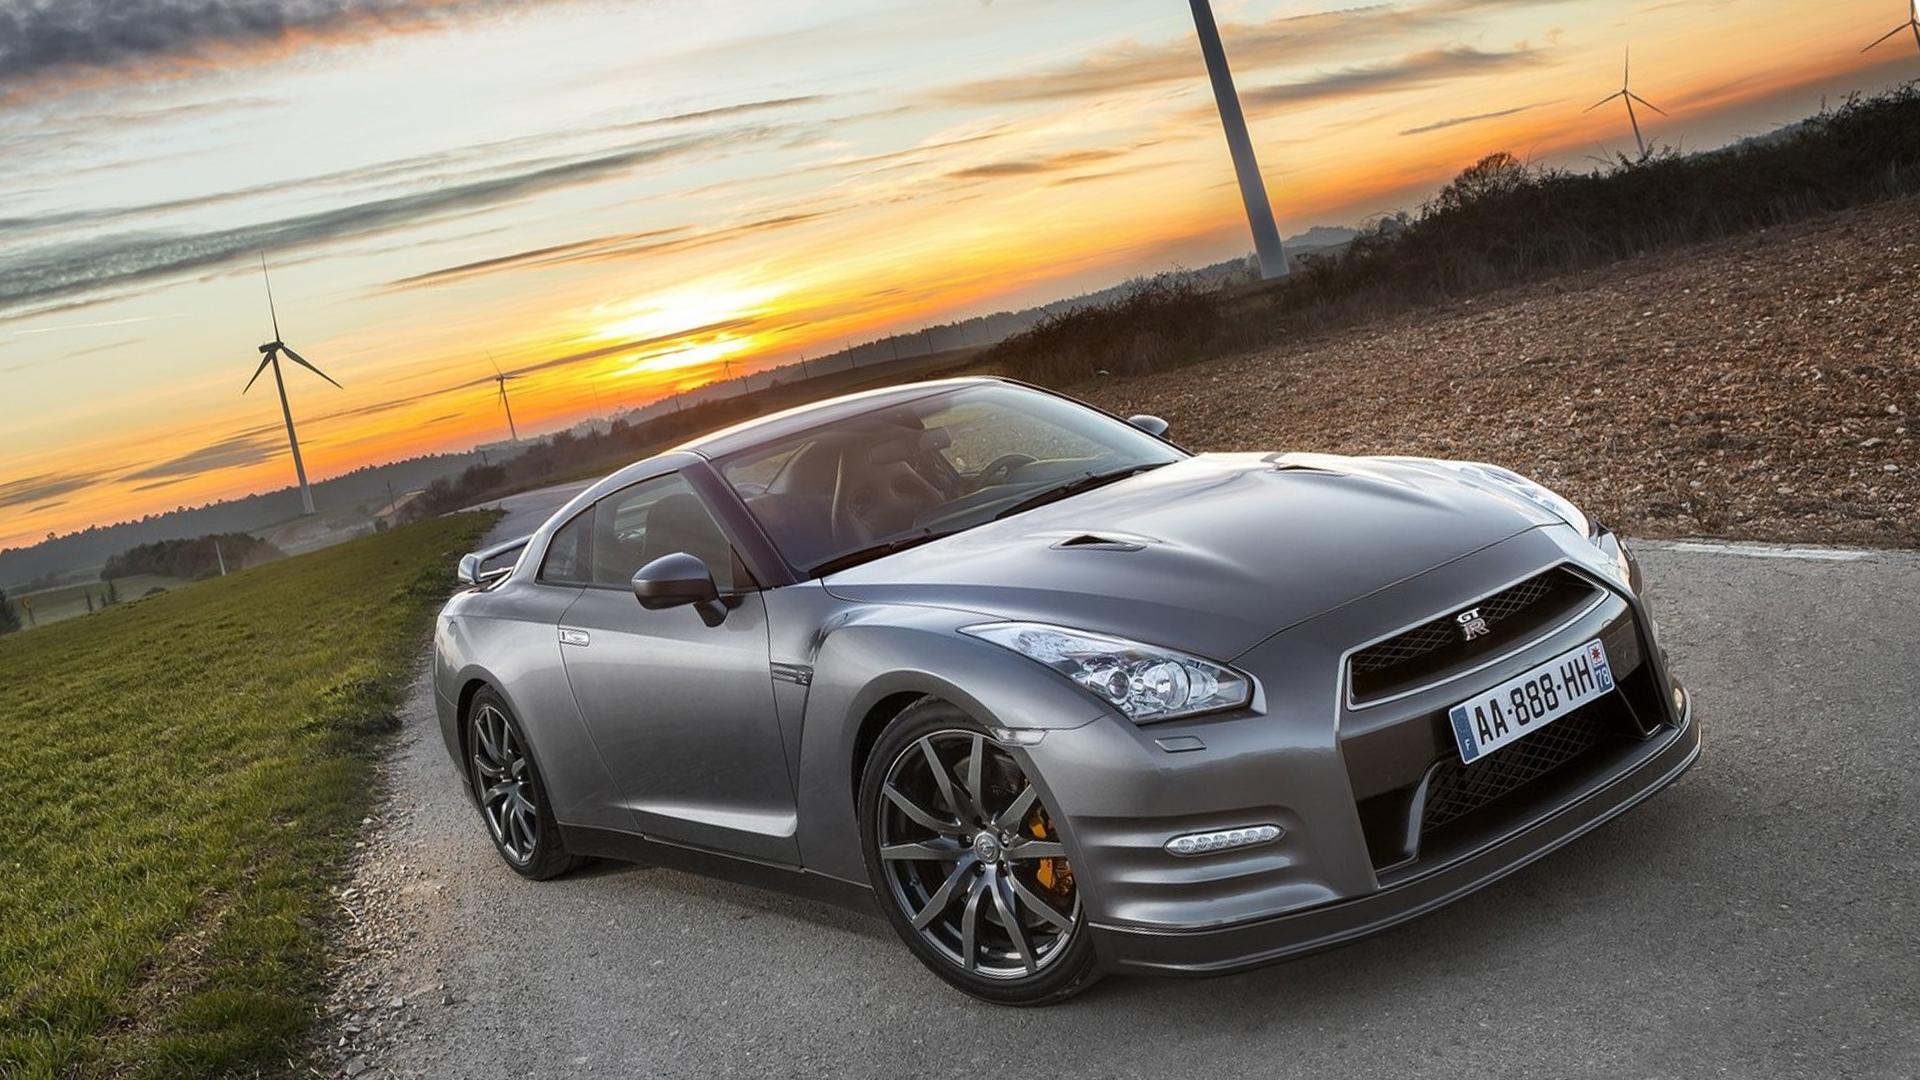 2019 Nissan GT-R Wallpapers - Wallpaper Cave